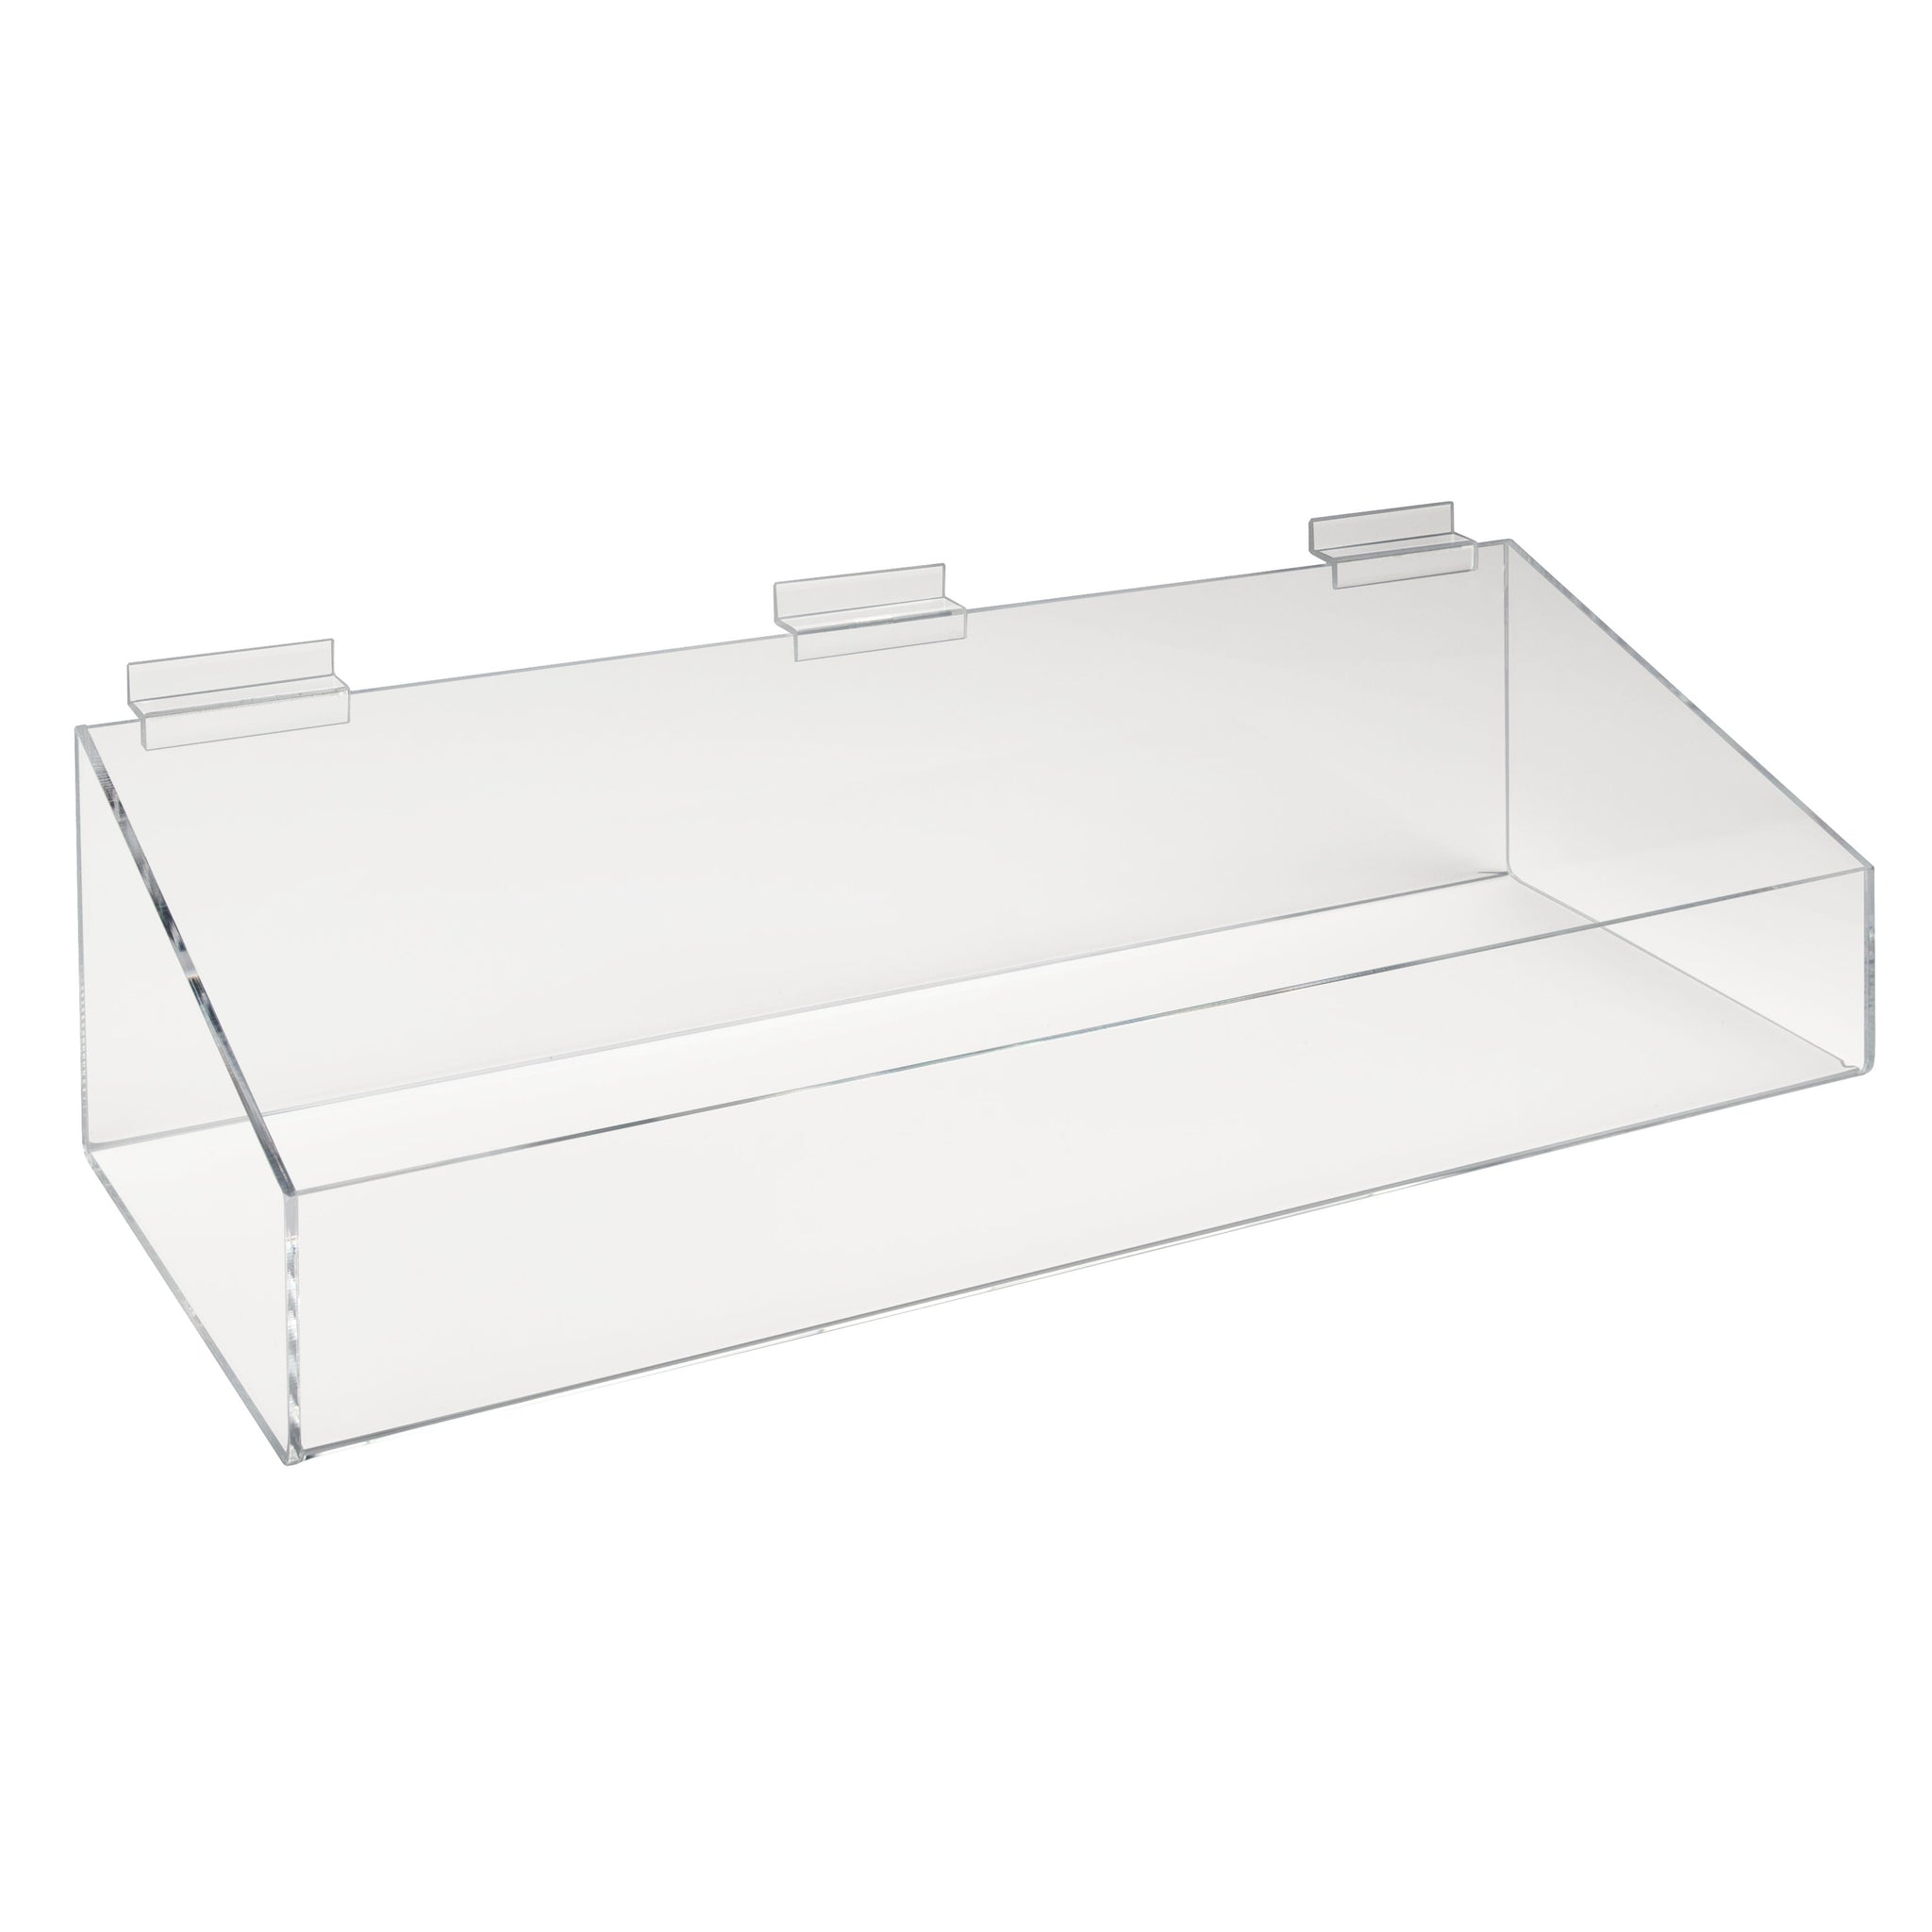 Econoco Acrylic Extra Support Tray With High Sides For Slatwall (2 Pcs. Per Carton)